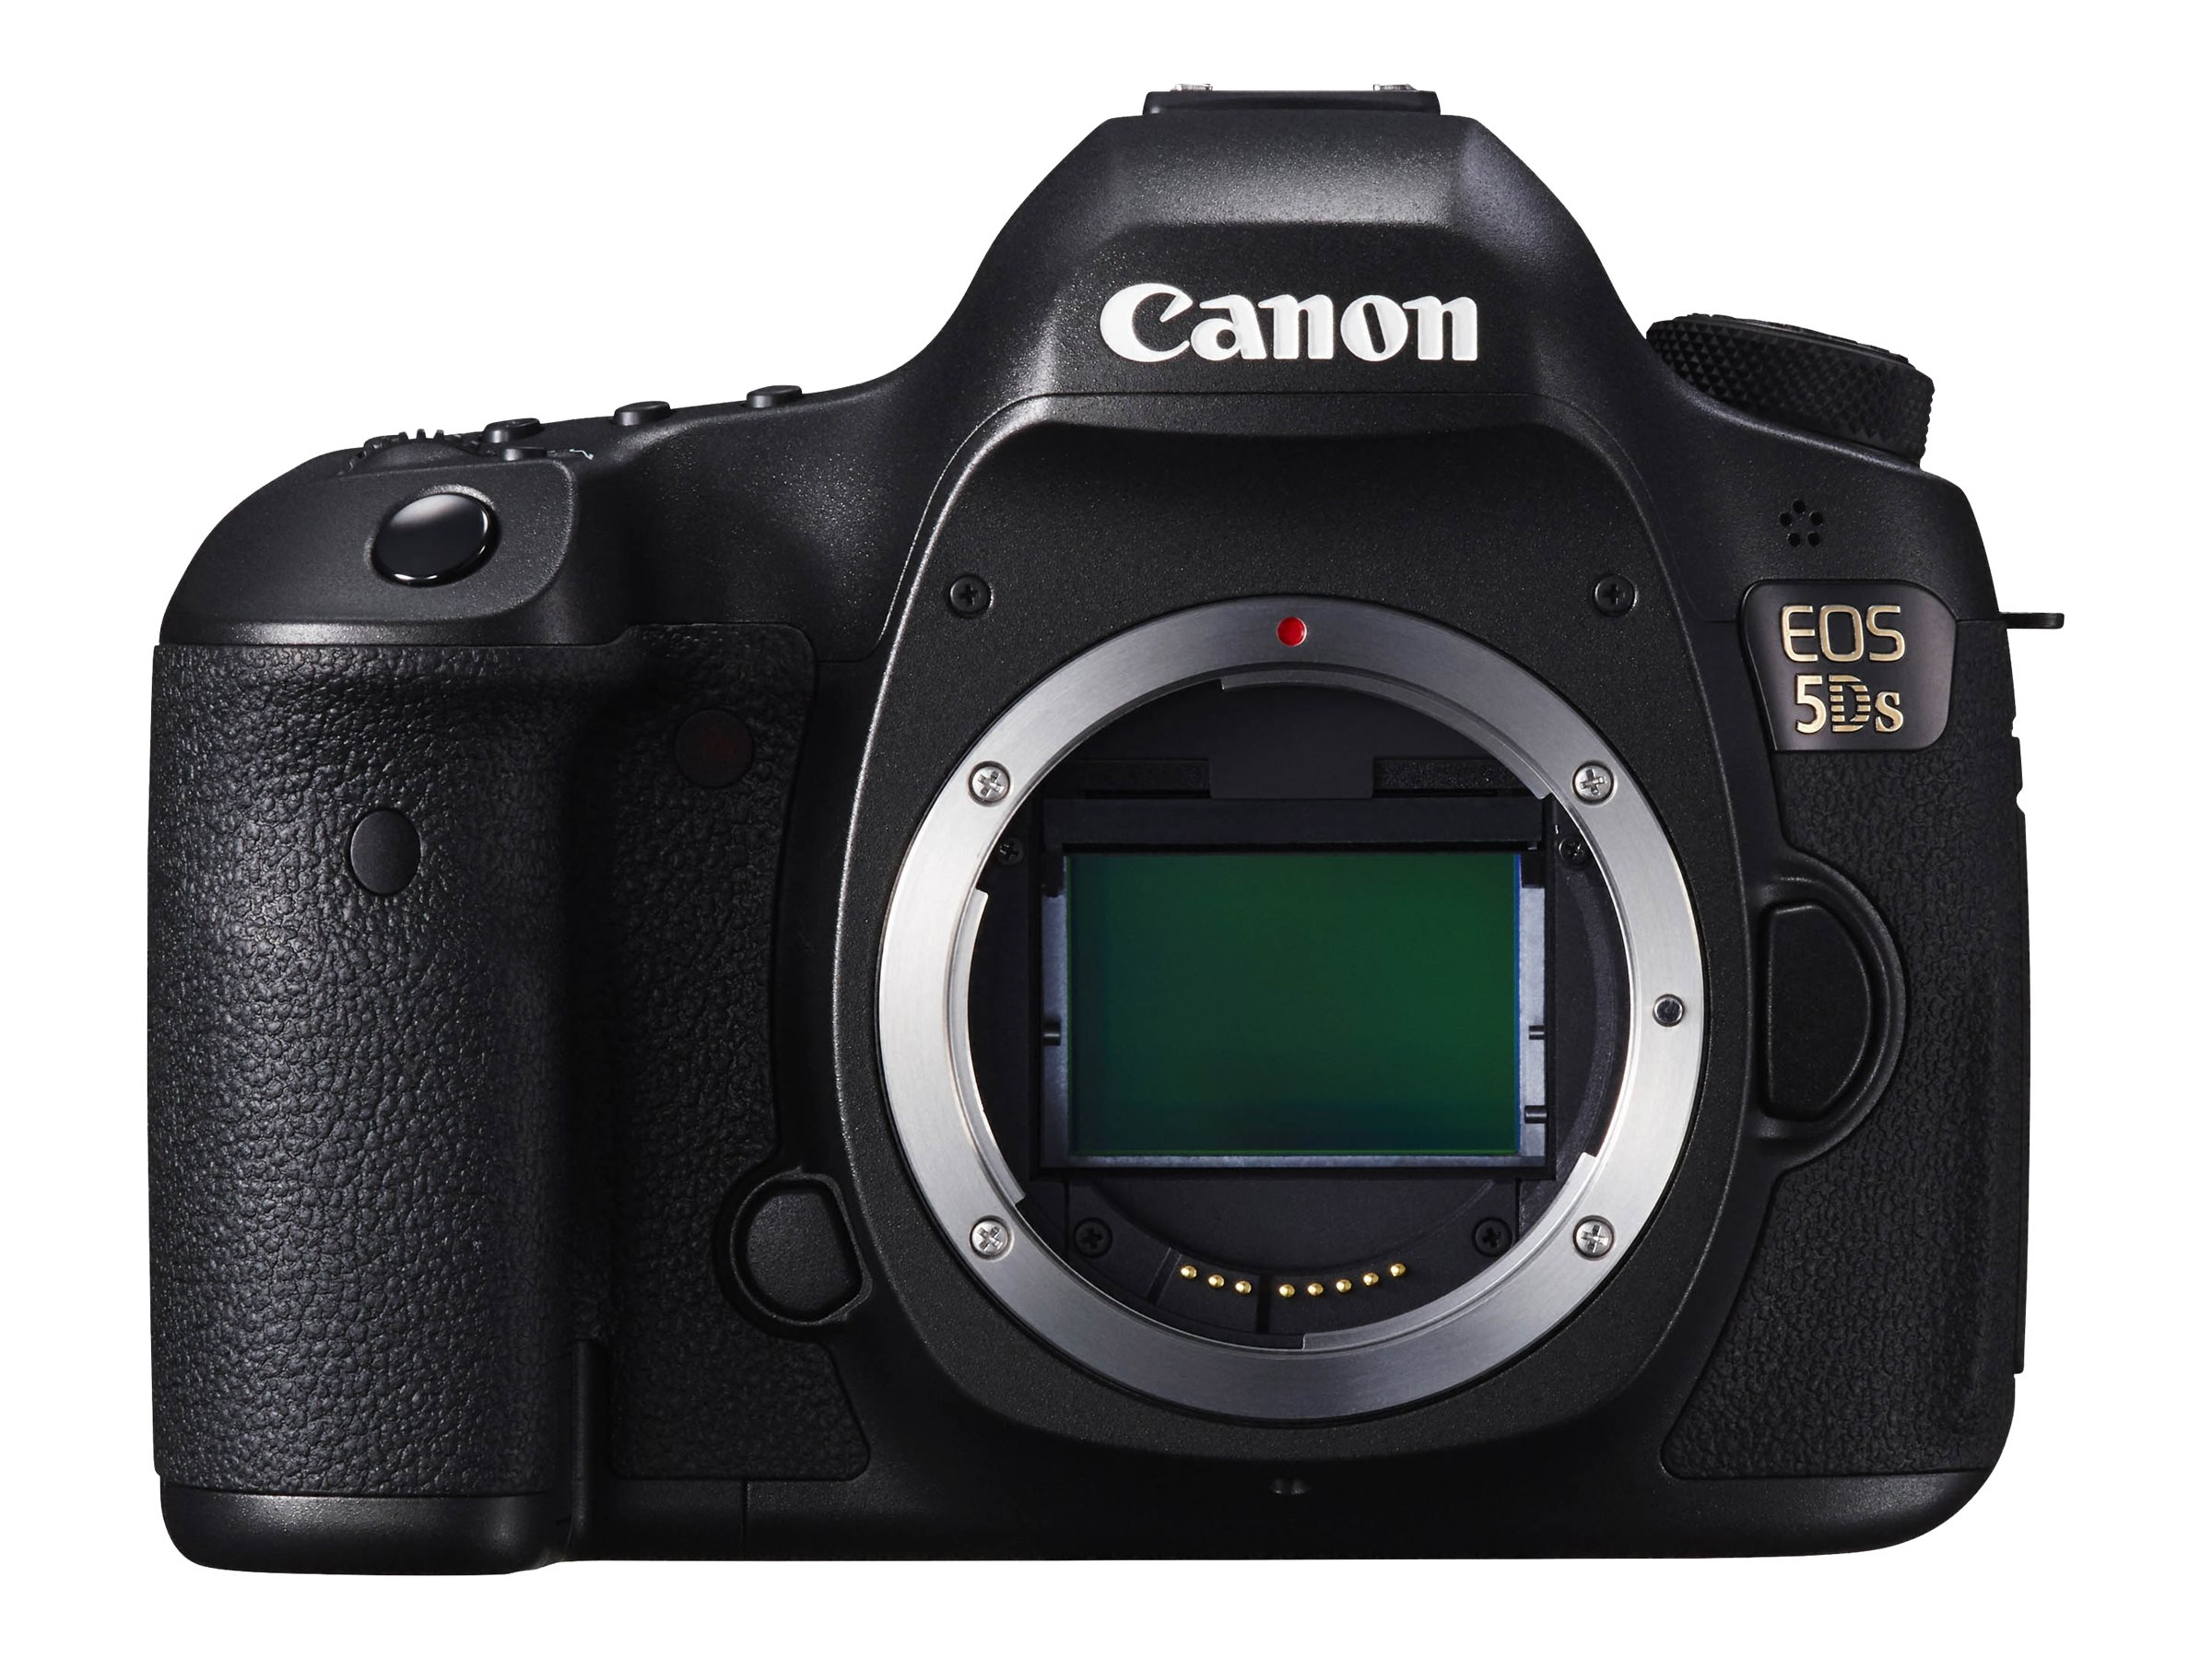 Image for Canon Eos 5Ds - Digital Camera - Body Only from Circuit City